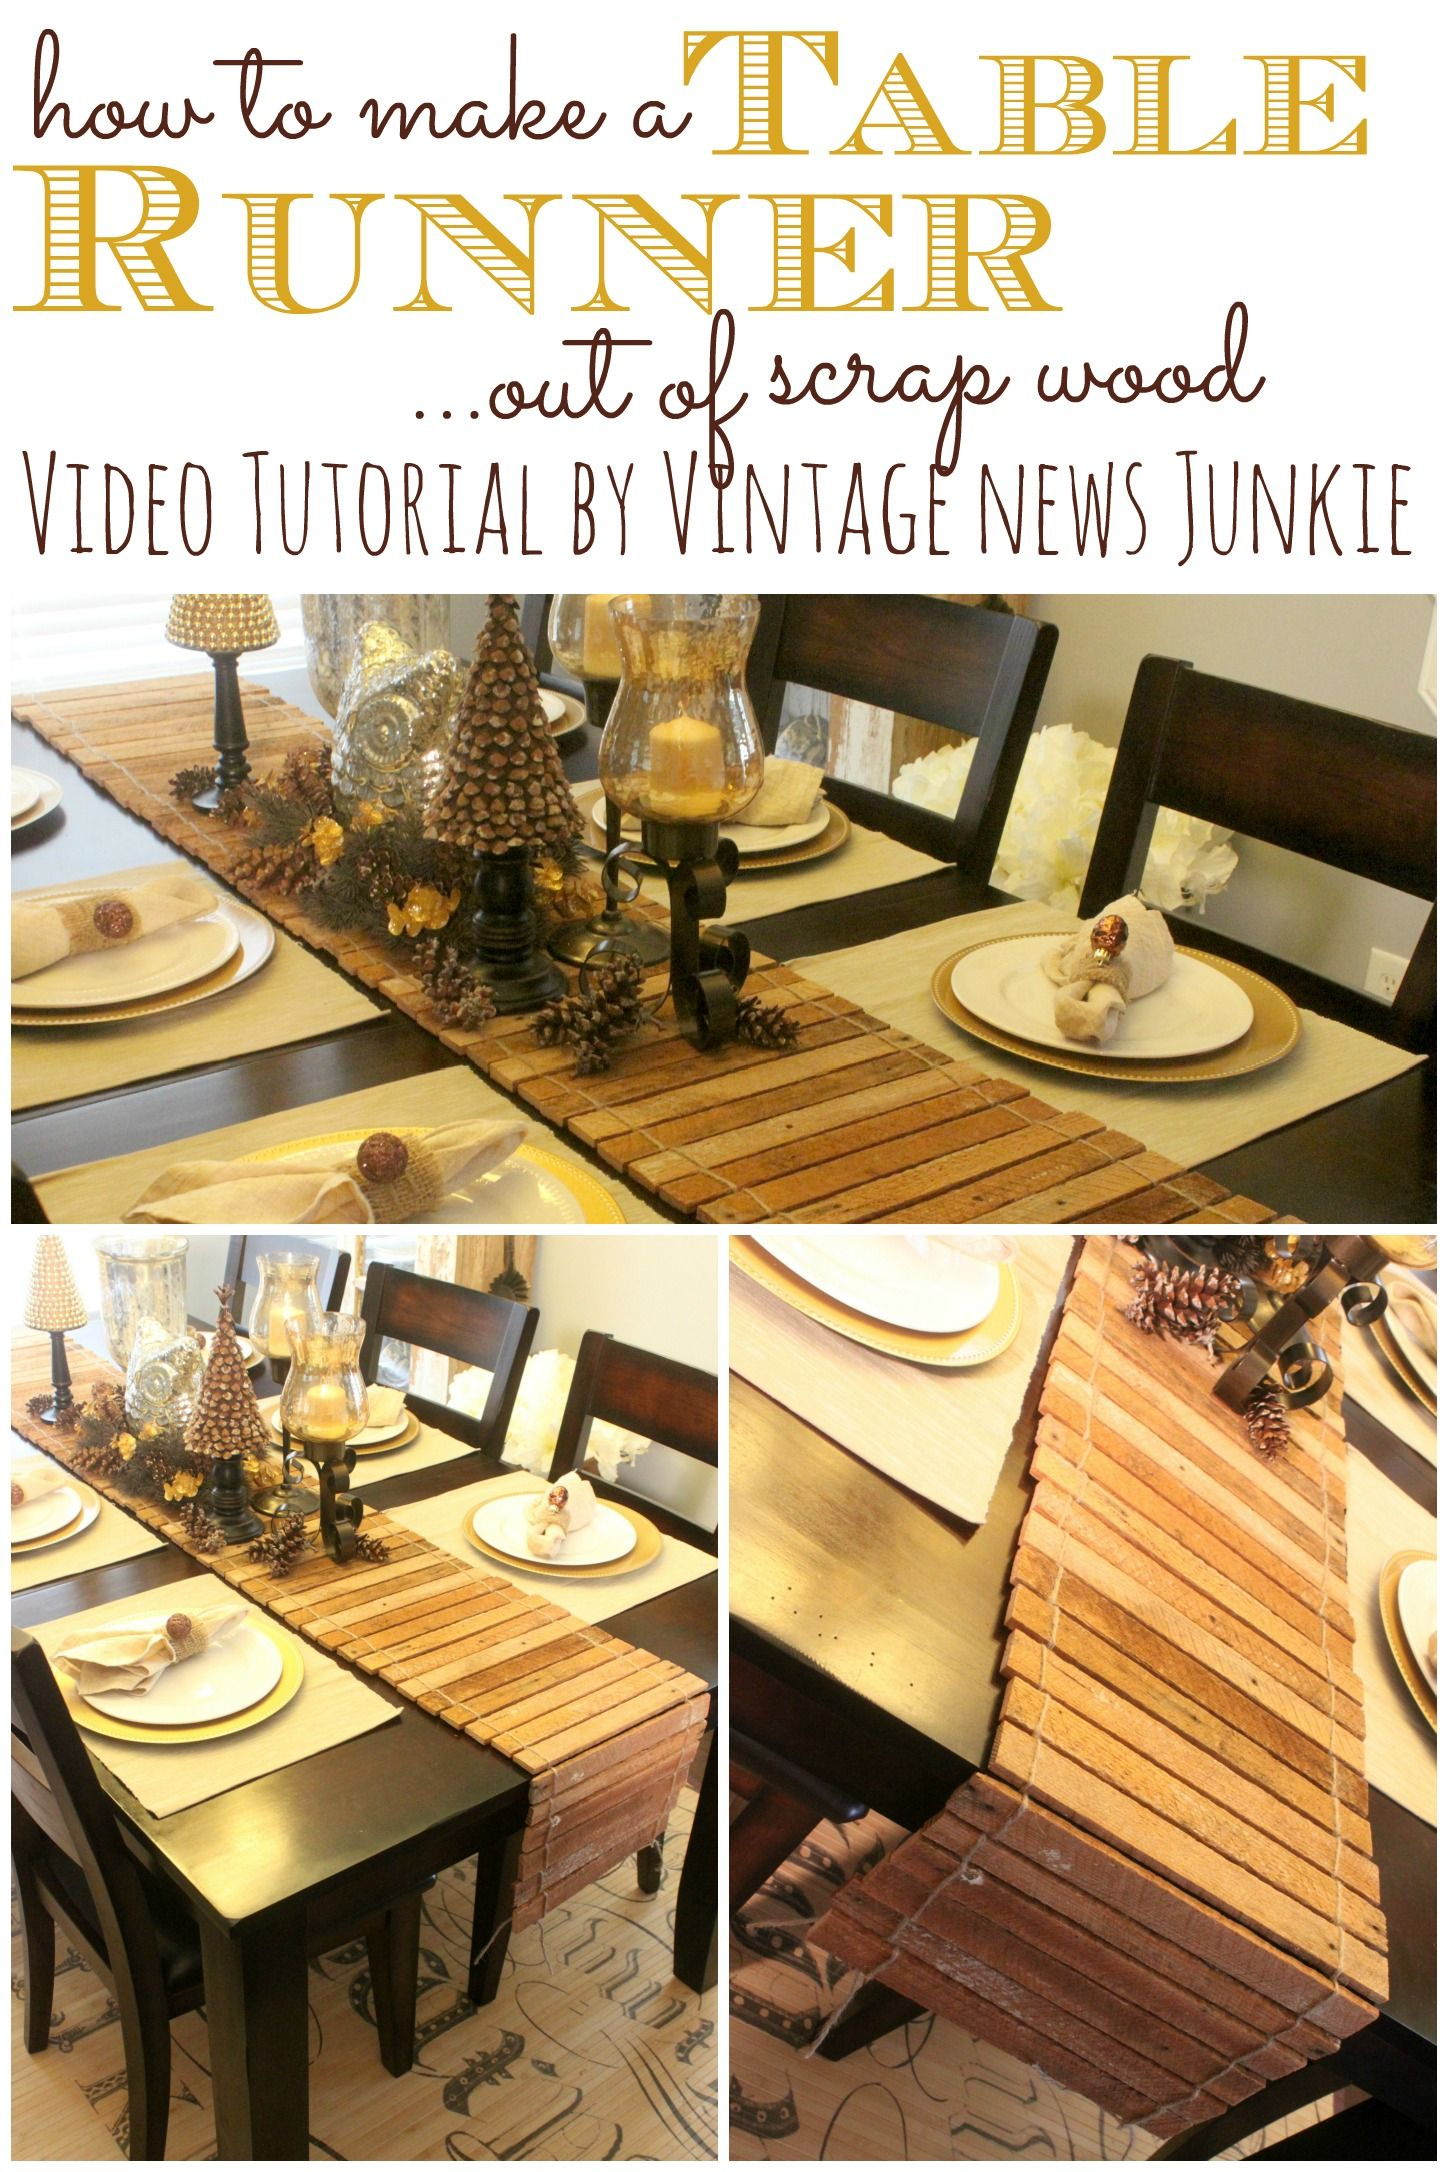 How to Make a Table Runner out of Scrap Wood {Tutorial by Vintage News Junkie}